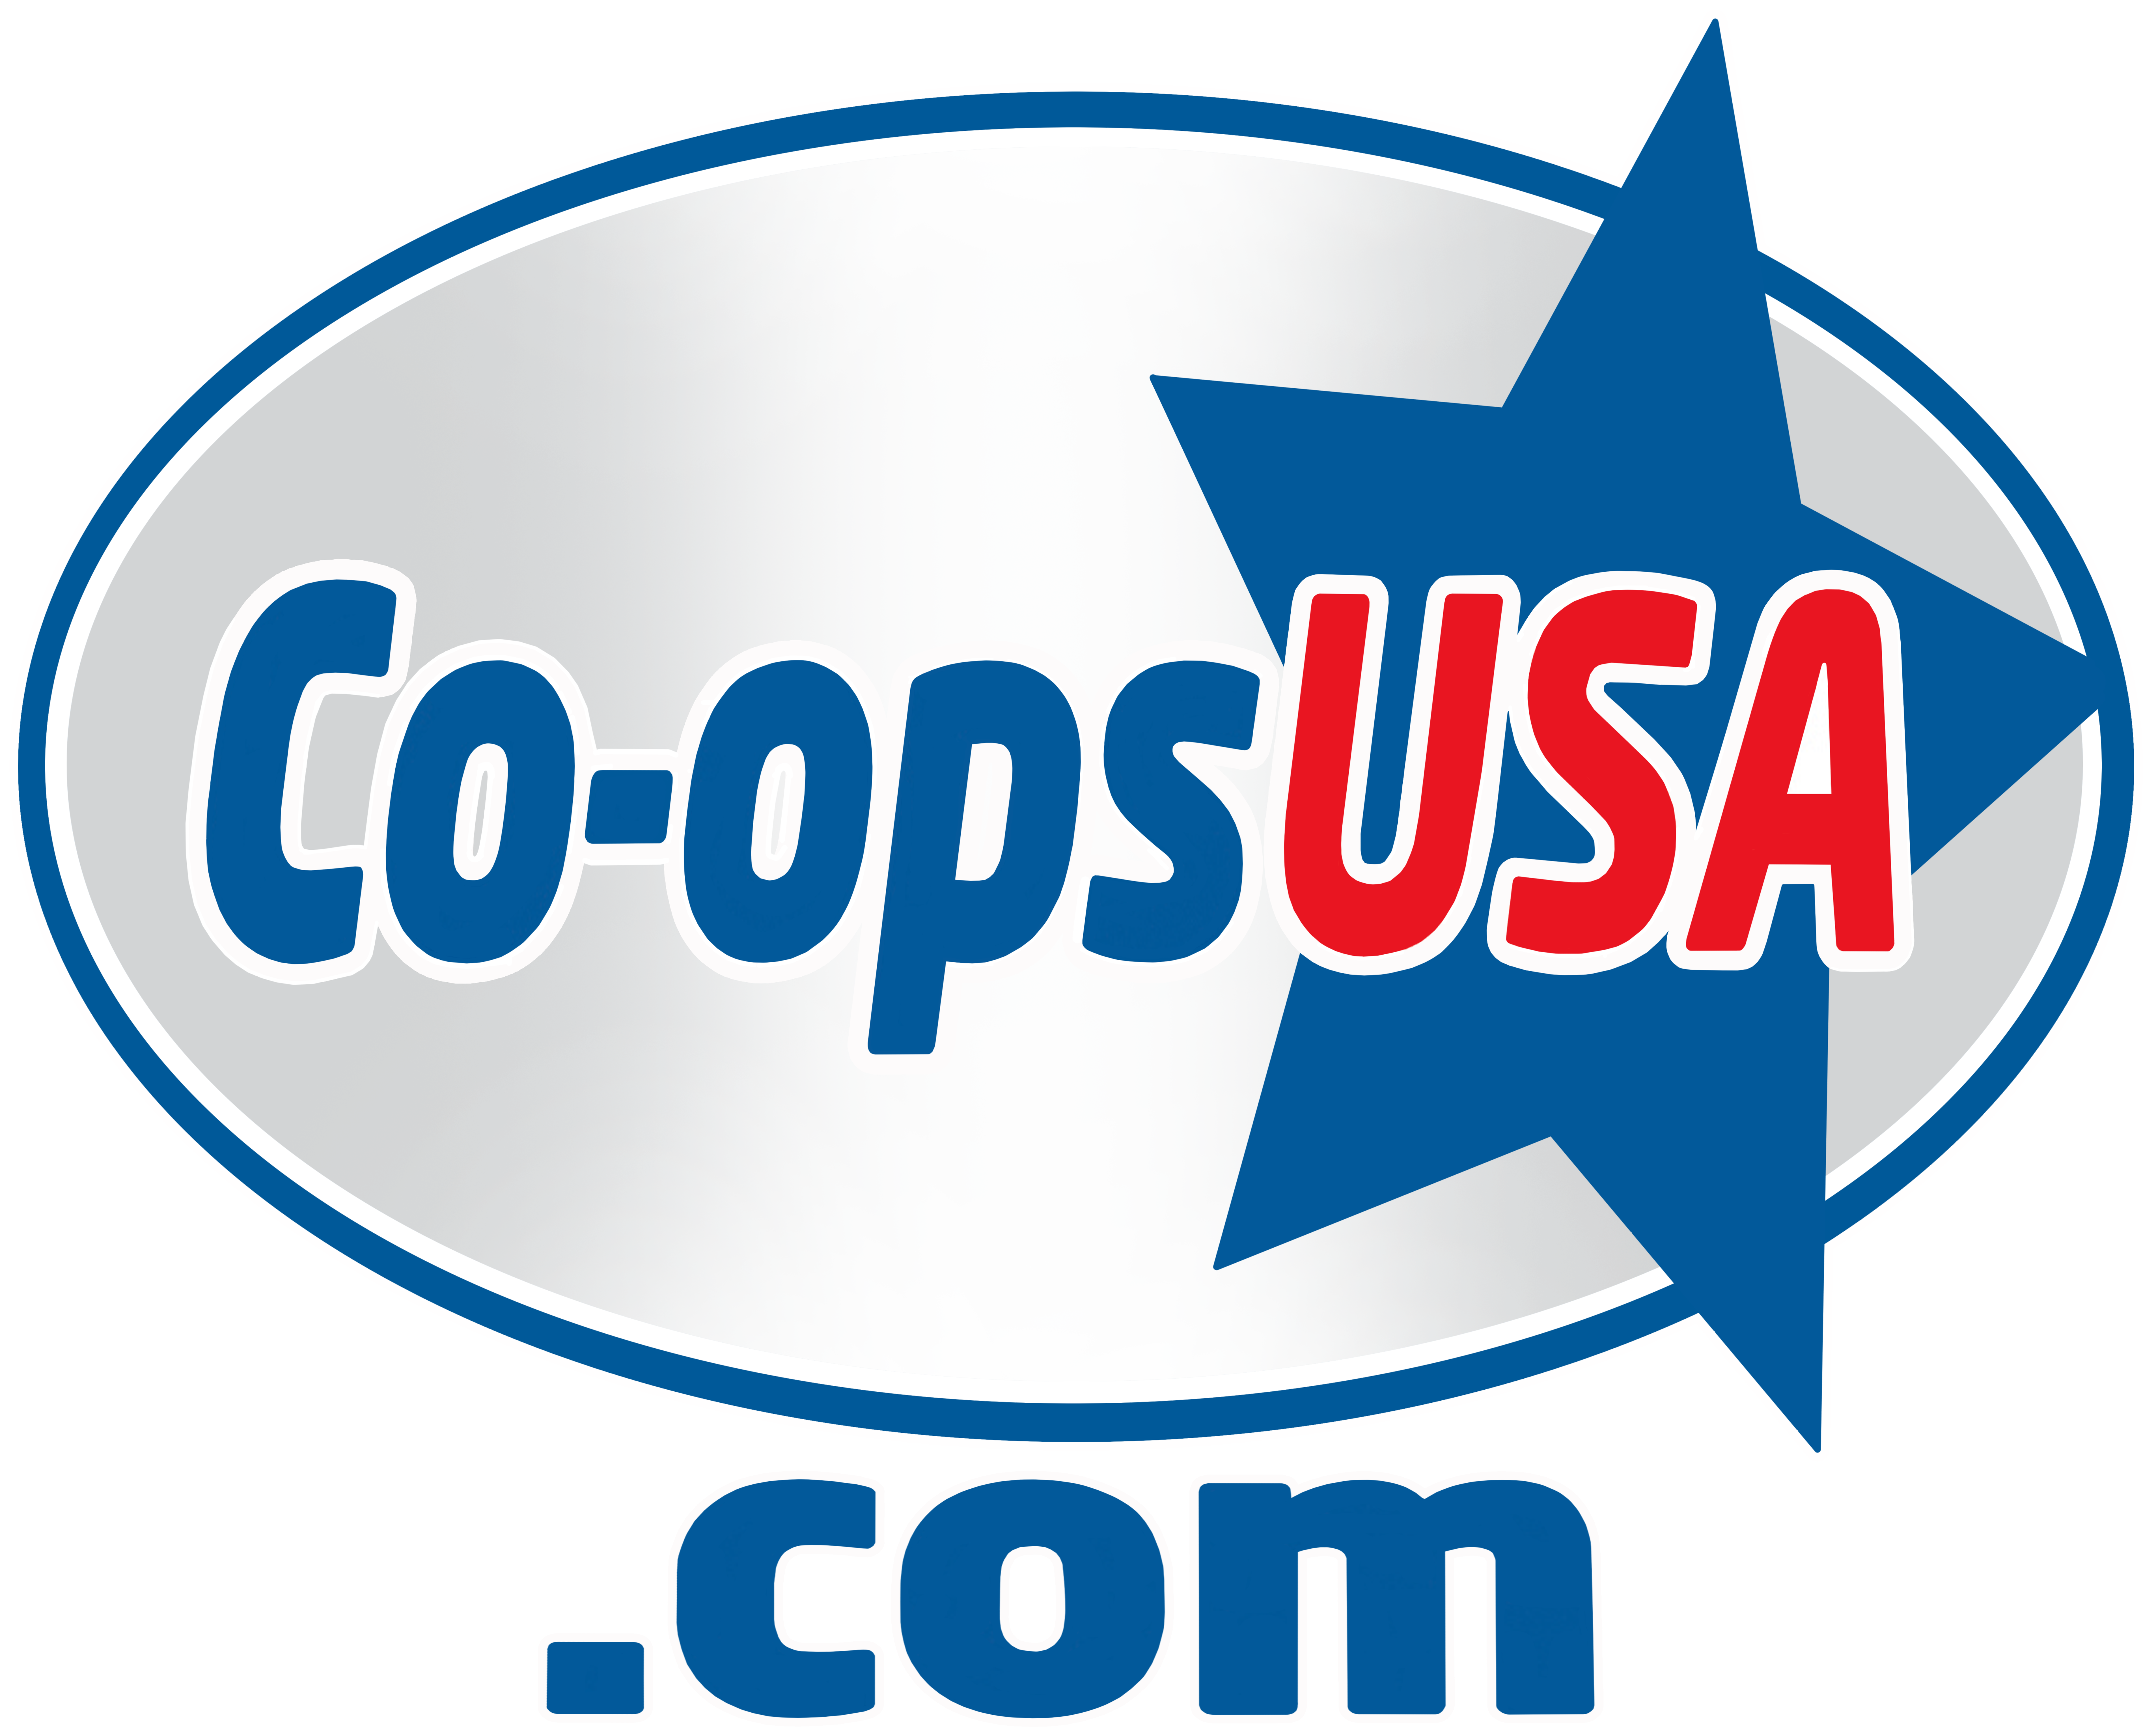 Co-ops USA